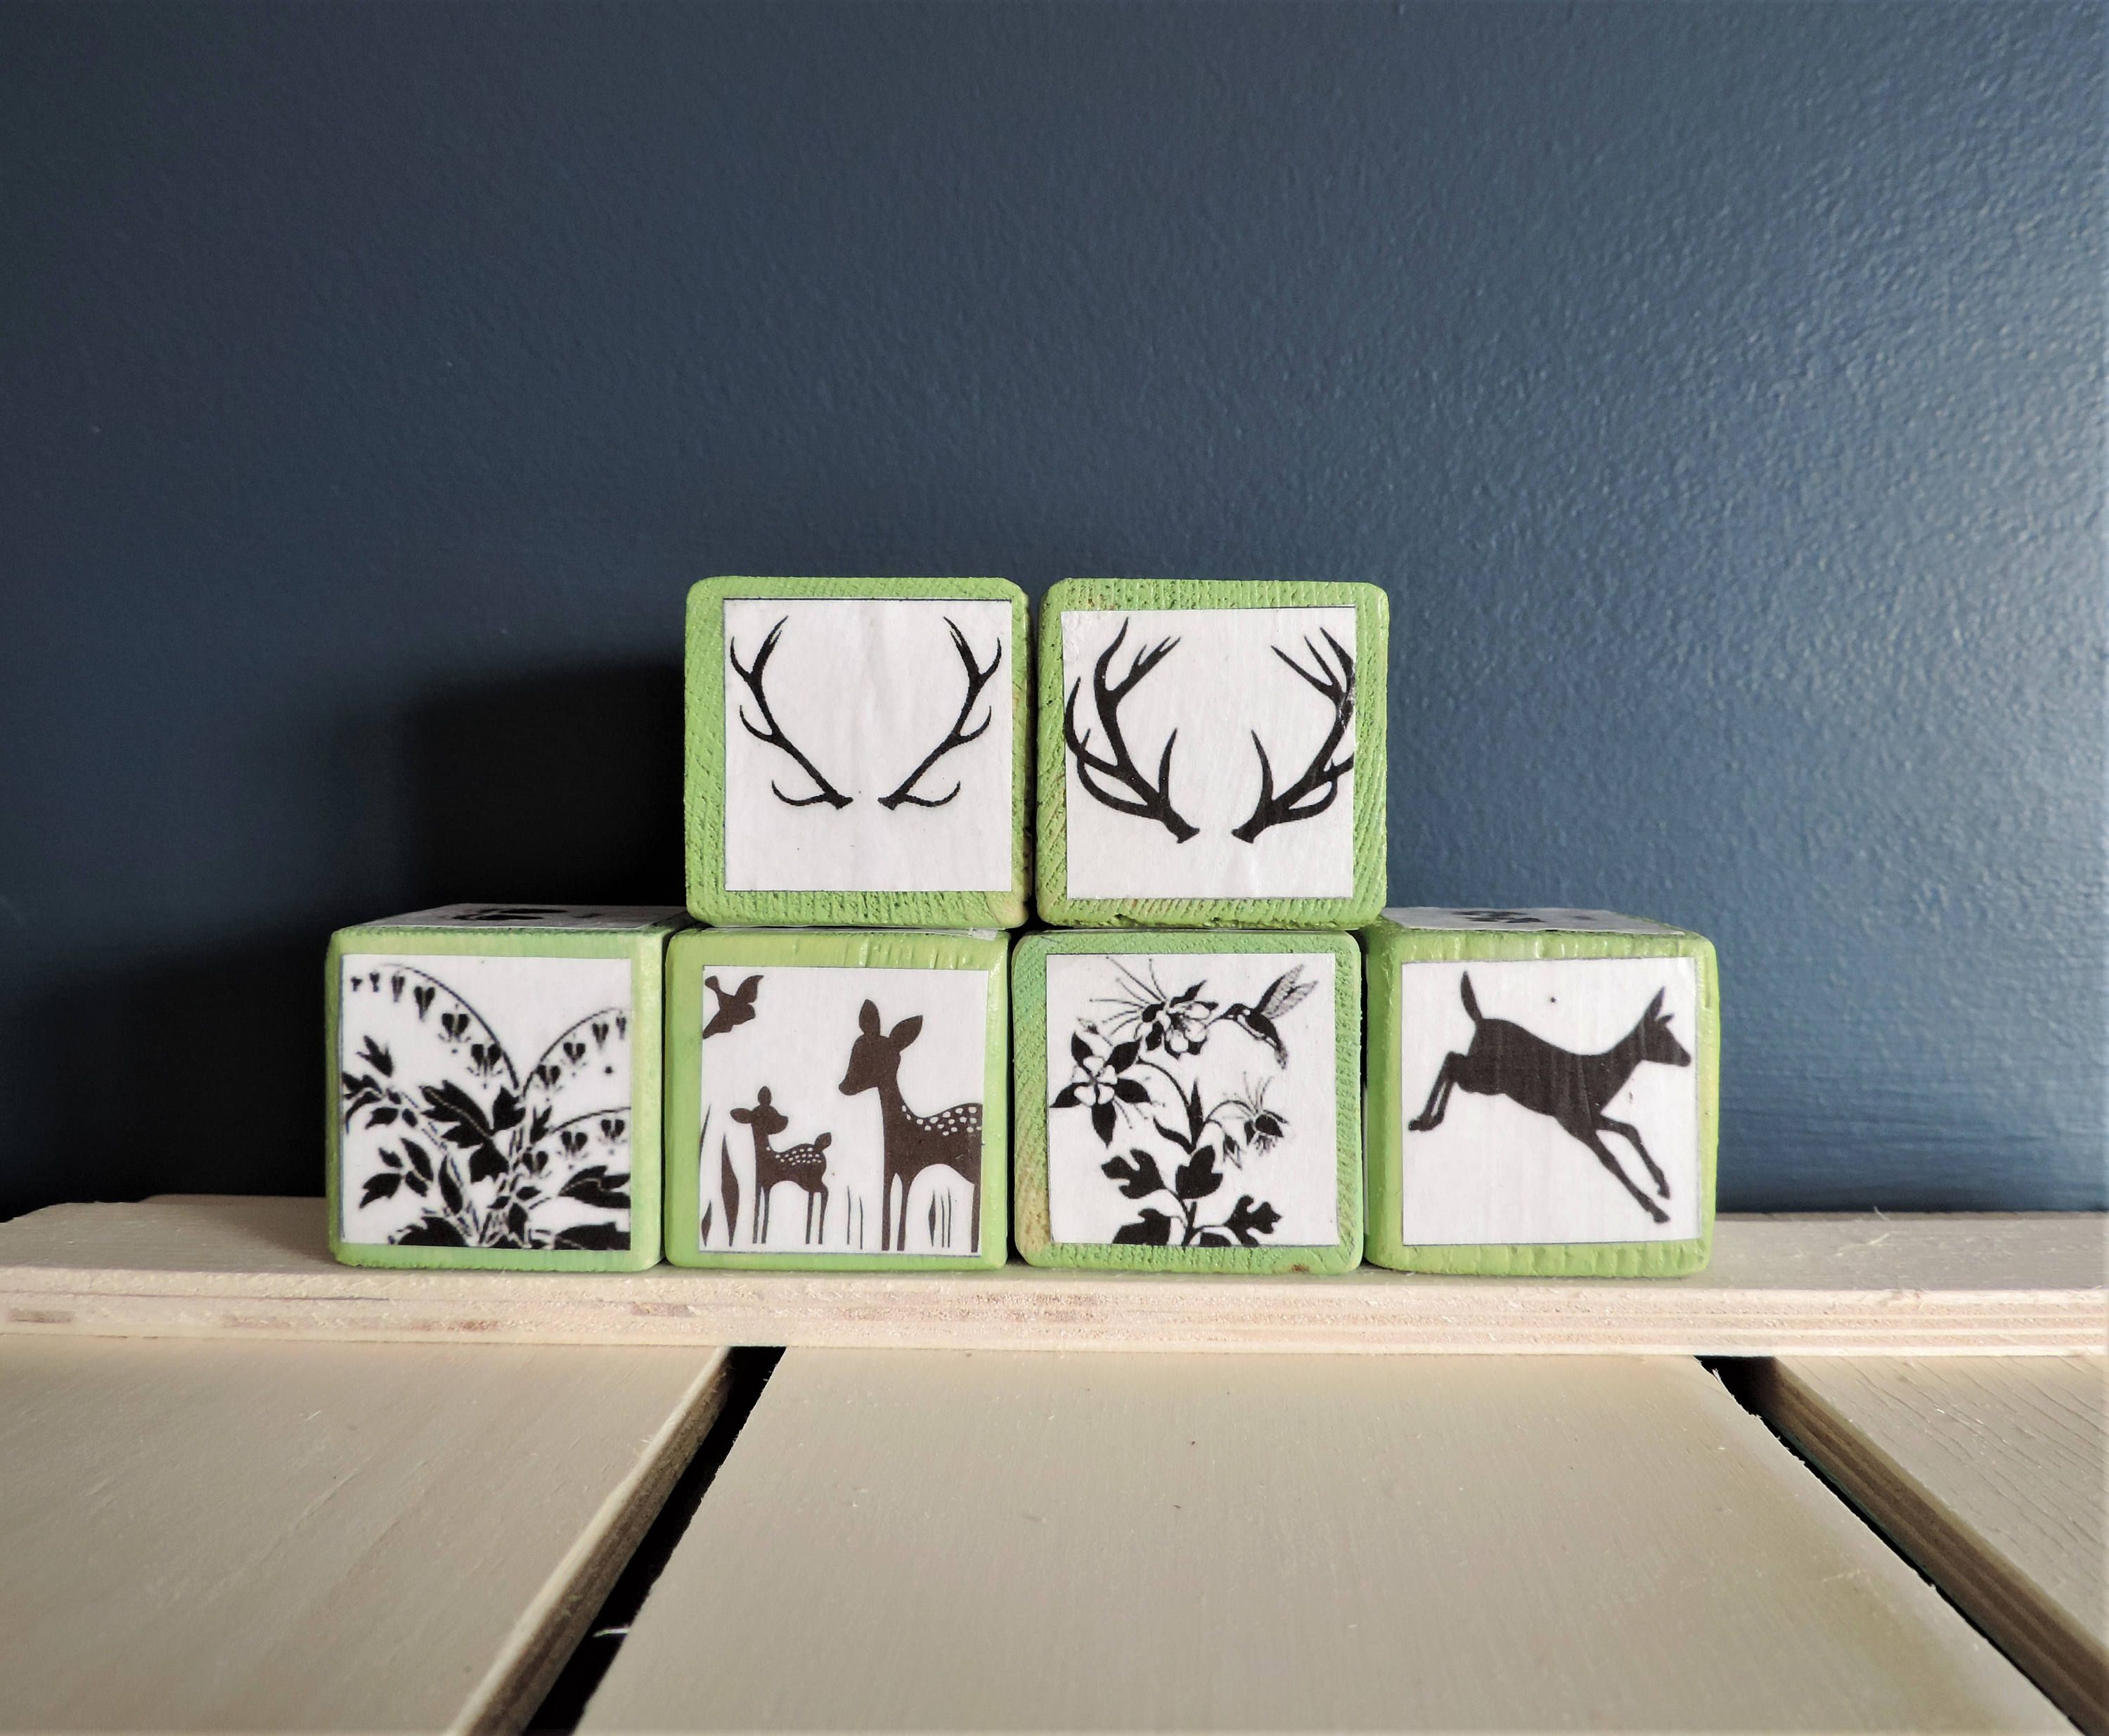 Ready To Ship Storybook Blocks Silhouette Woodland Animals,Rustic Woodland Nursery,Whimsical